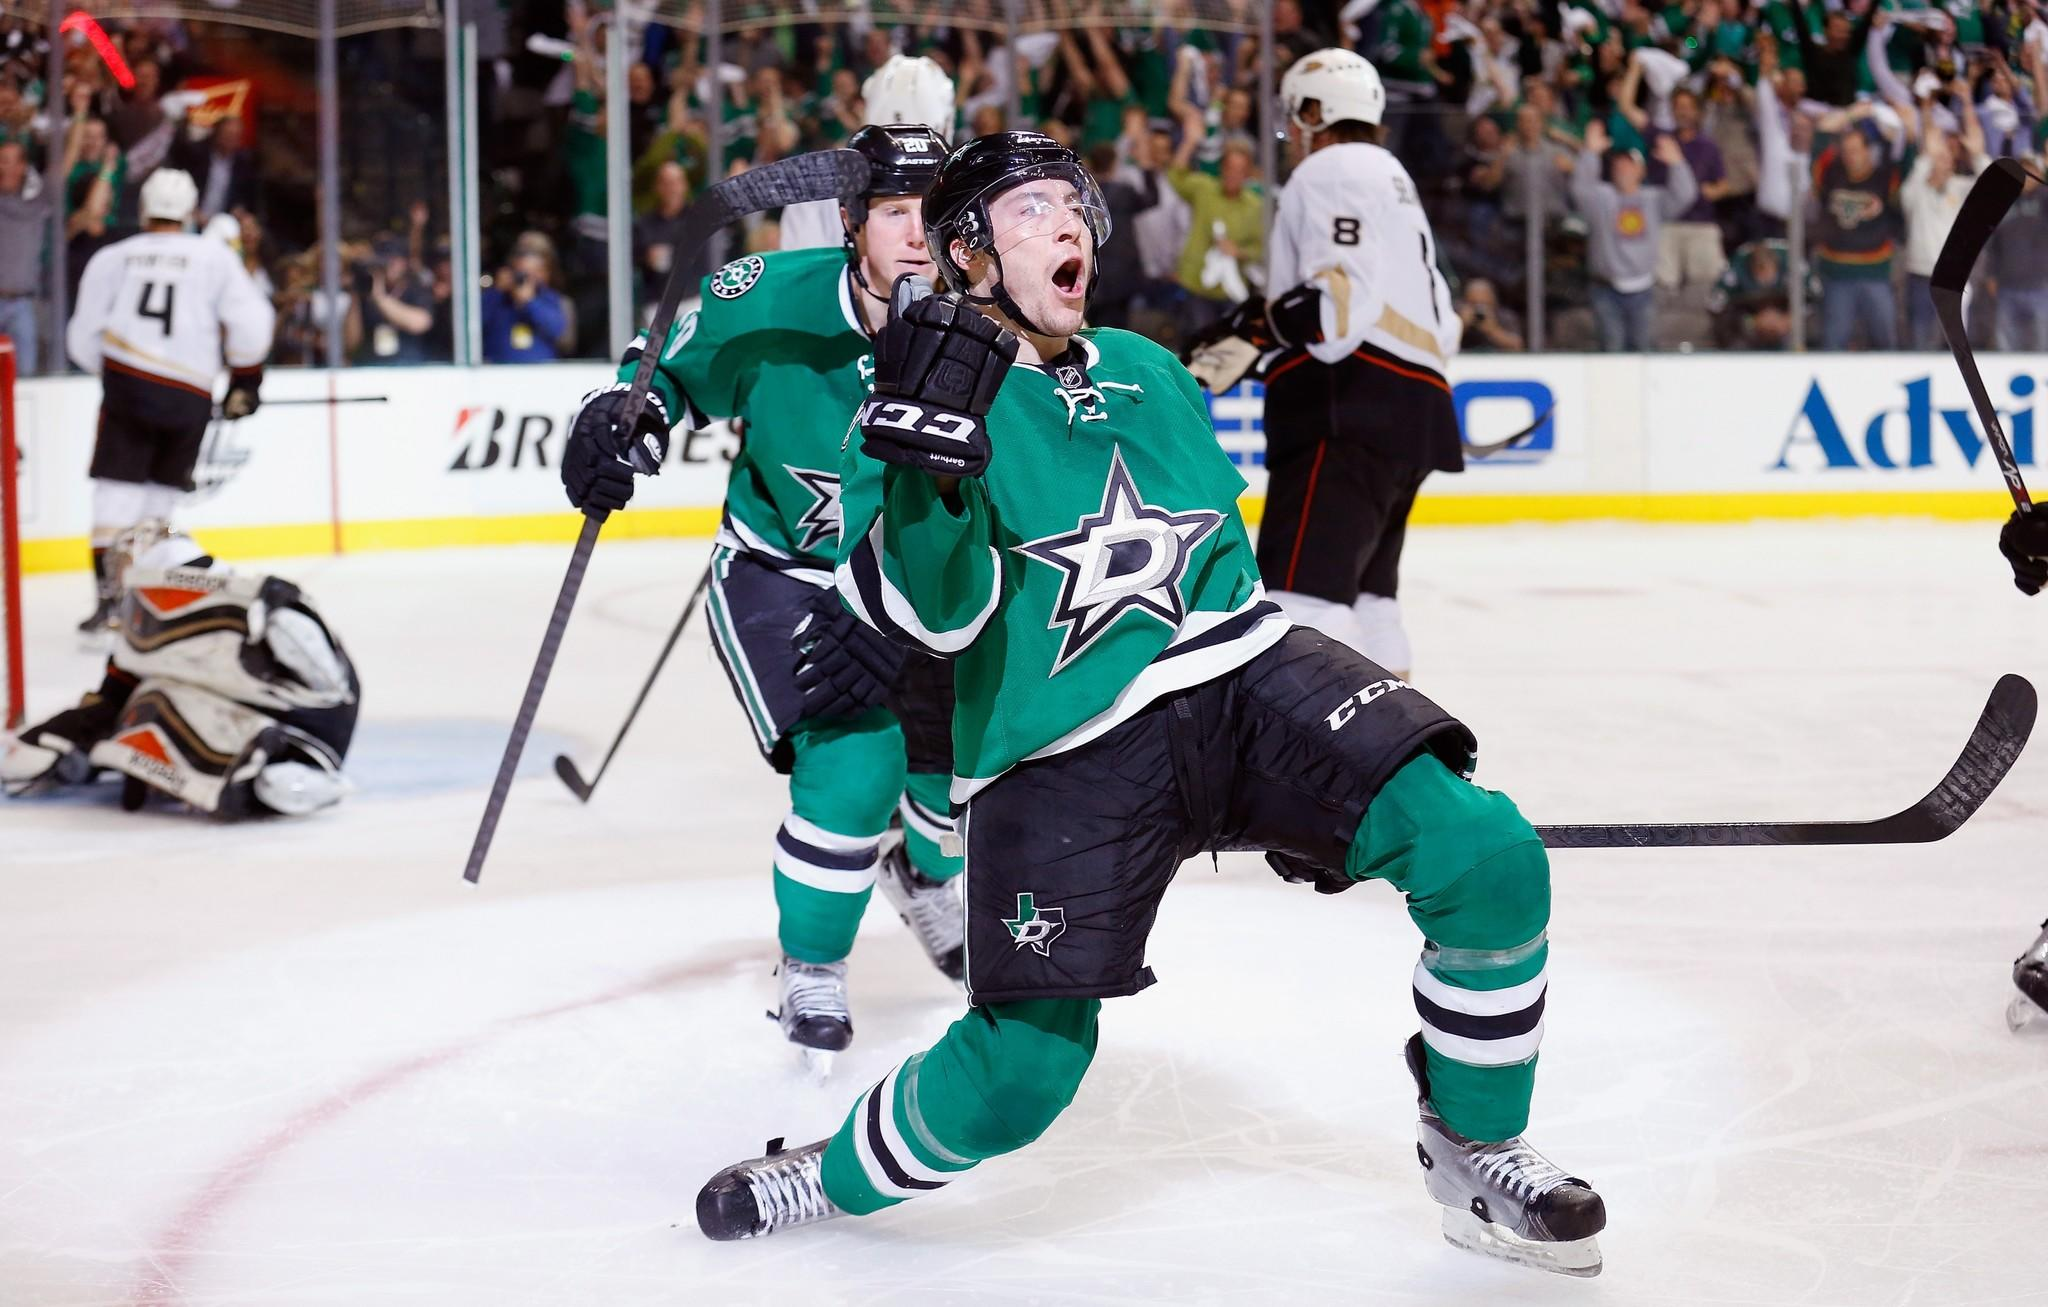 The Dallas Stars' Ryan Garbutt celebrates after scoring a goal against the Ducks on Monday.